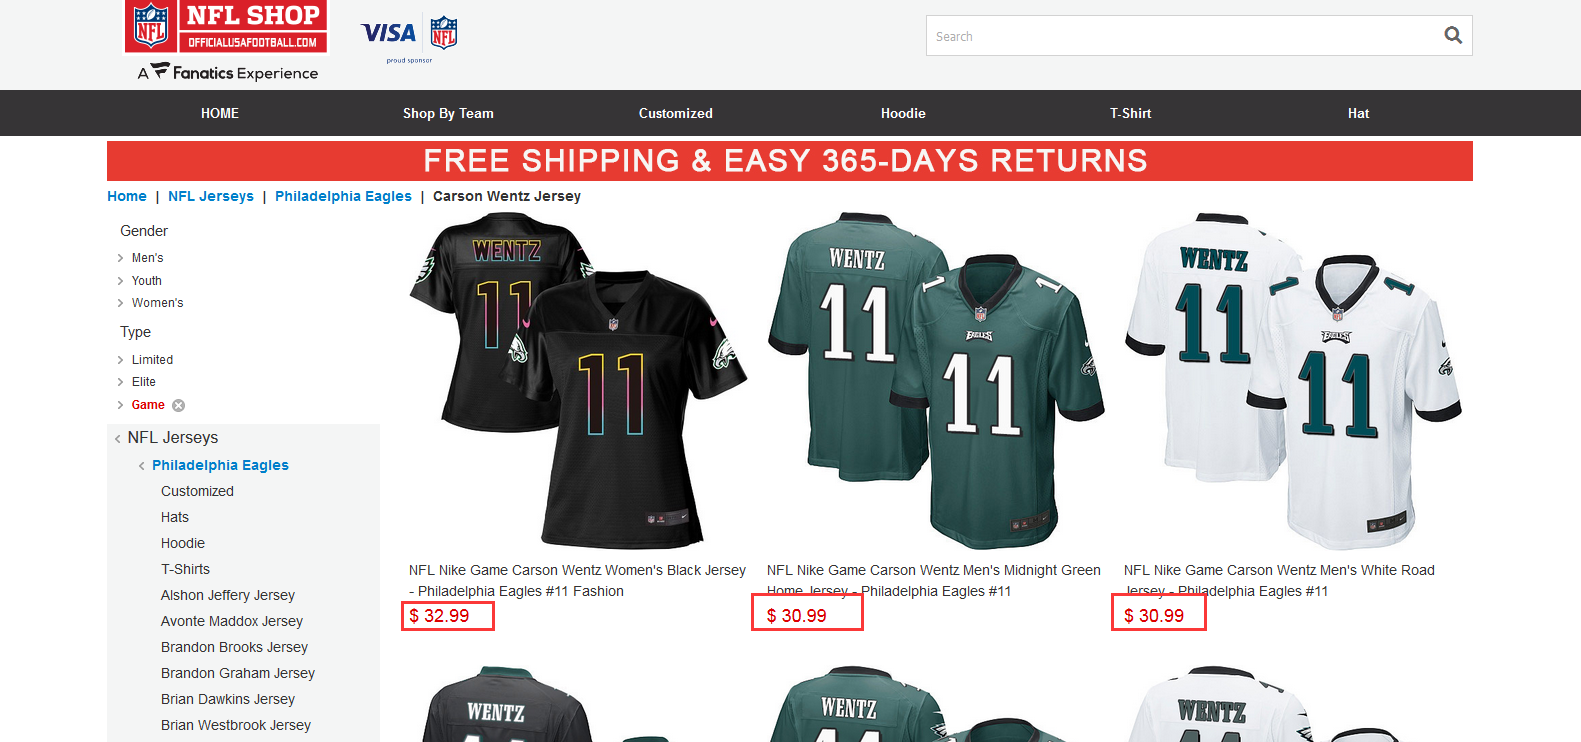 88ad563911b What is a good website to buy sports jerseys  - Quora